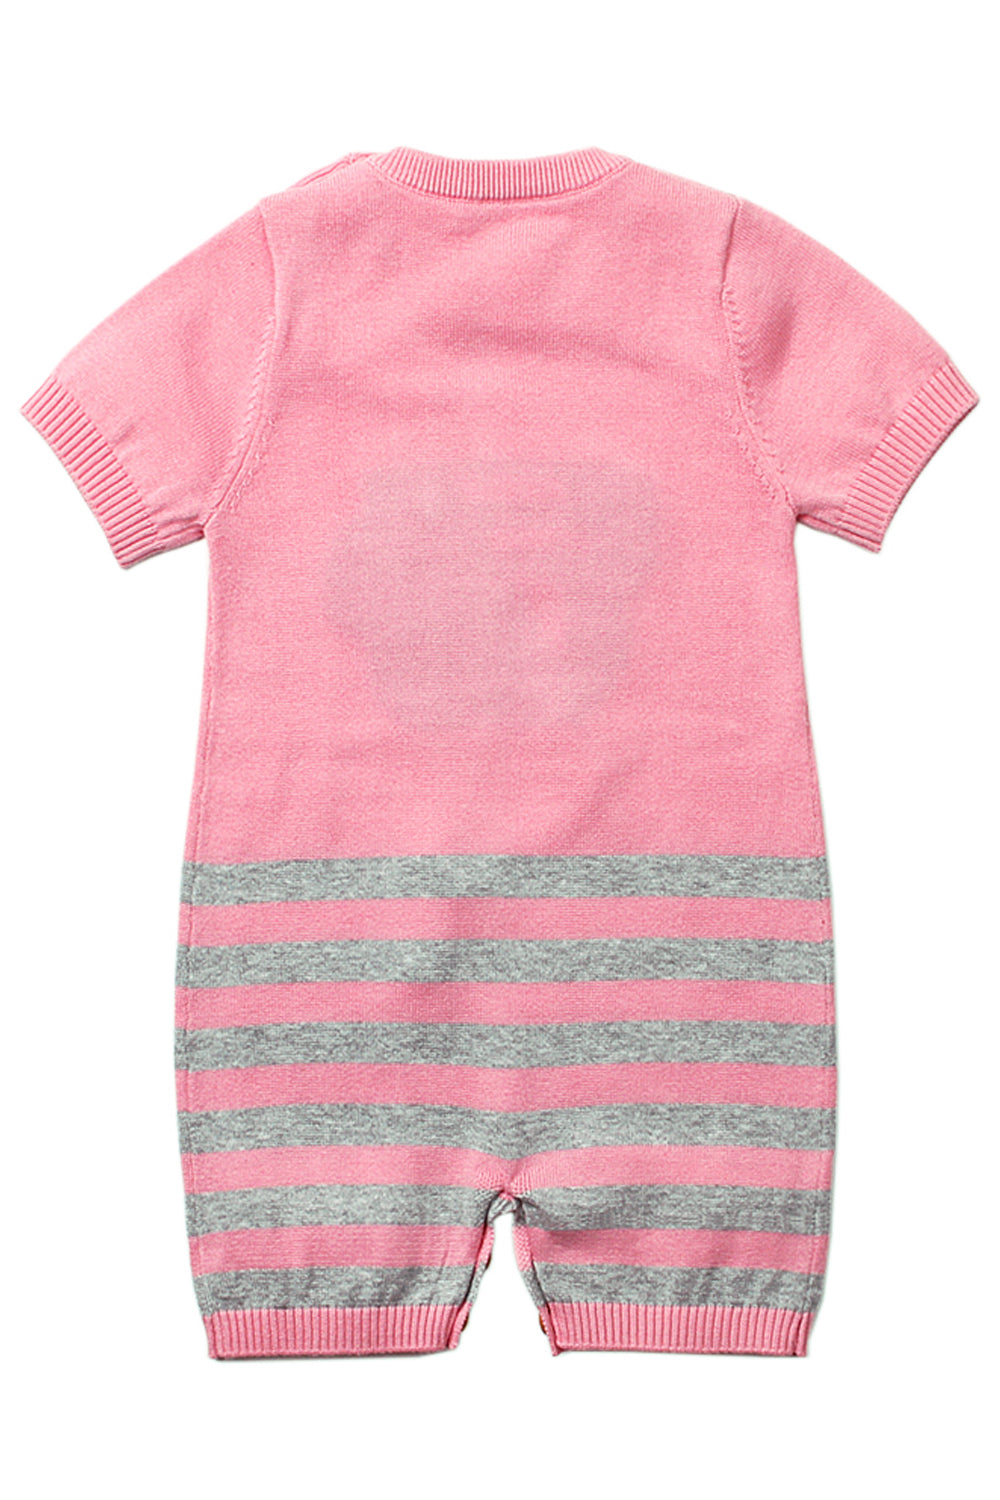 Pink Cute Cloud Pattern Knit Newborn Baby Romper